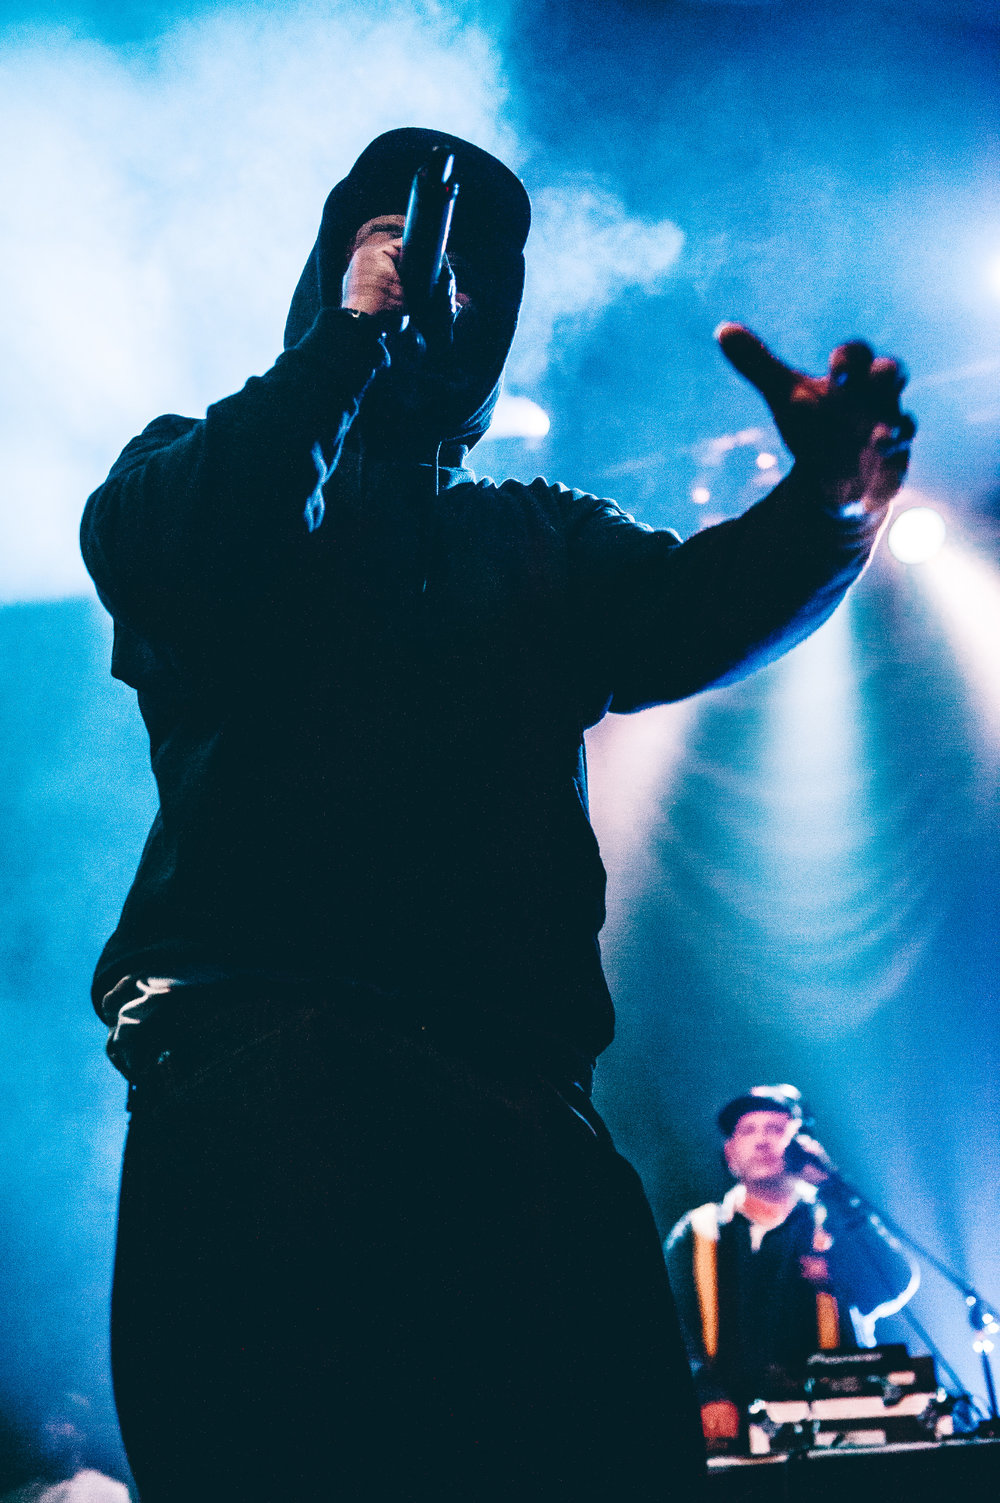 1_Ghostface_Killah-Rickshaw_Theatre-Timothy_Nguyen-20170227 (15 of 16).jpg